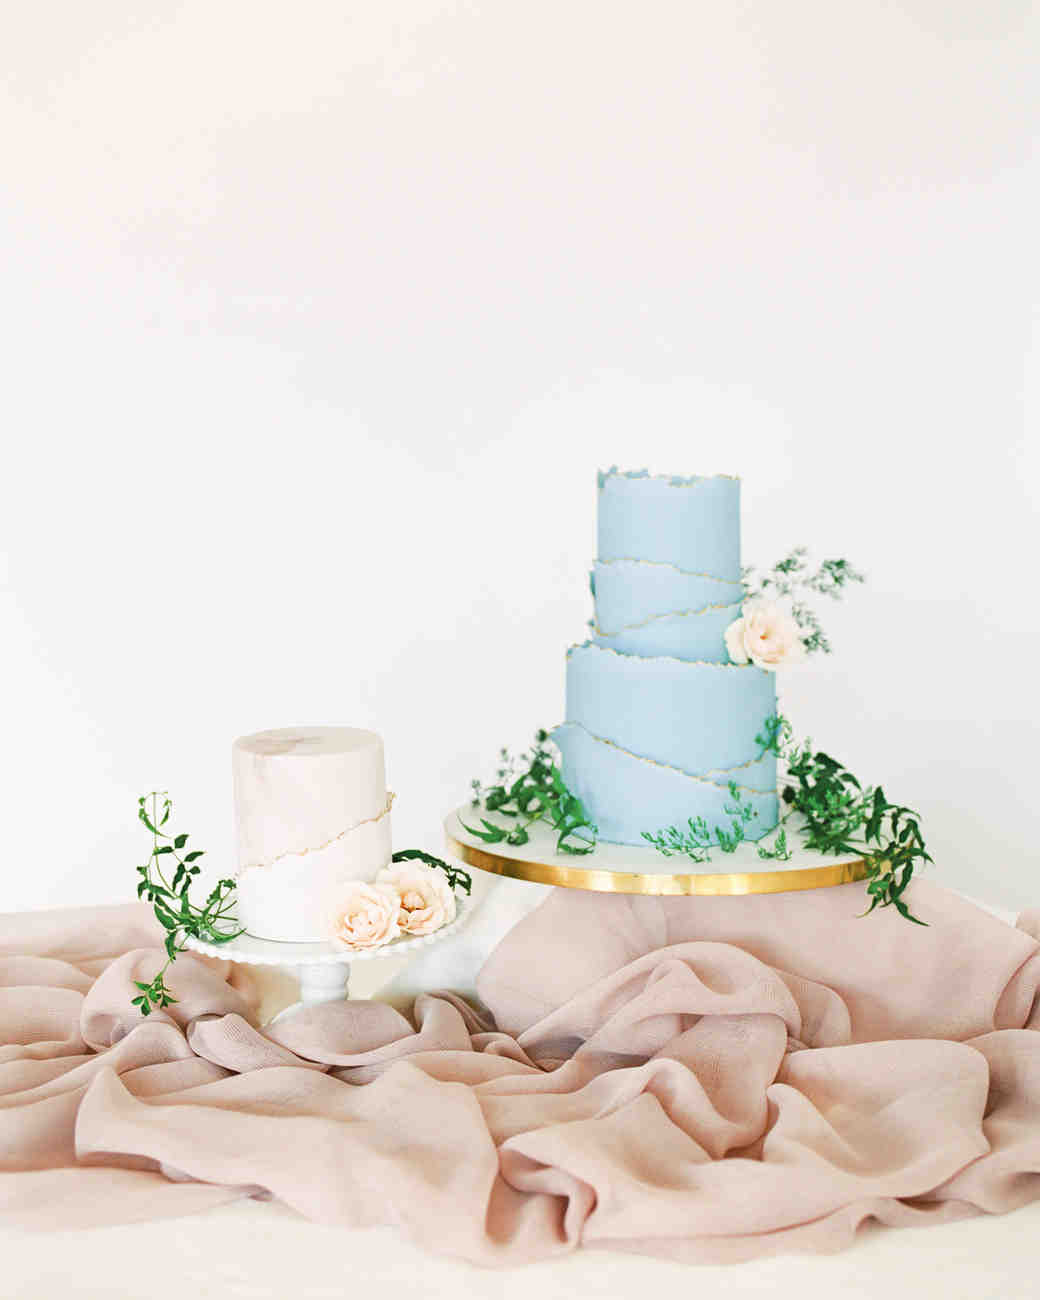 blue and white wedding cakes with deckled edges